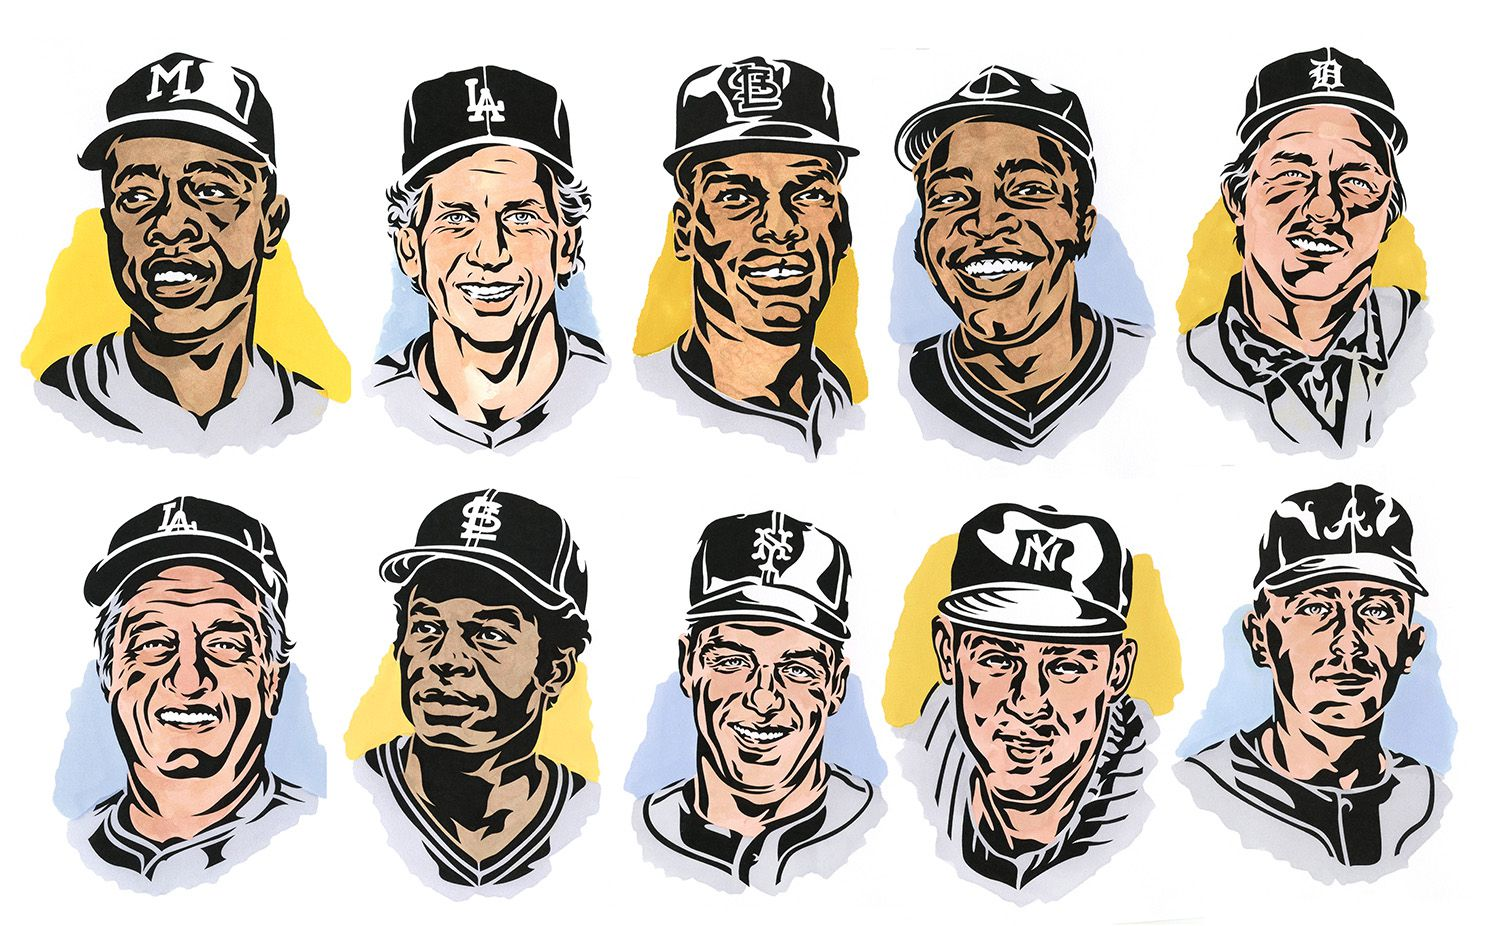 America lost 10 Baseball Hall of Famers in the last 10 months.